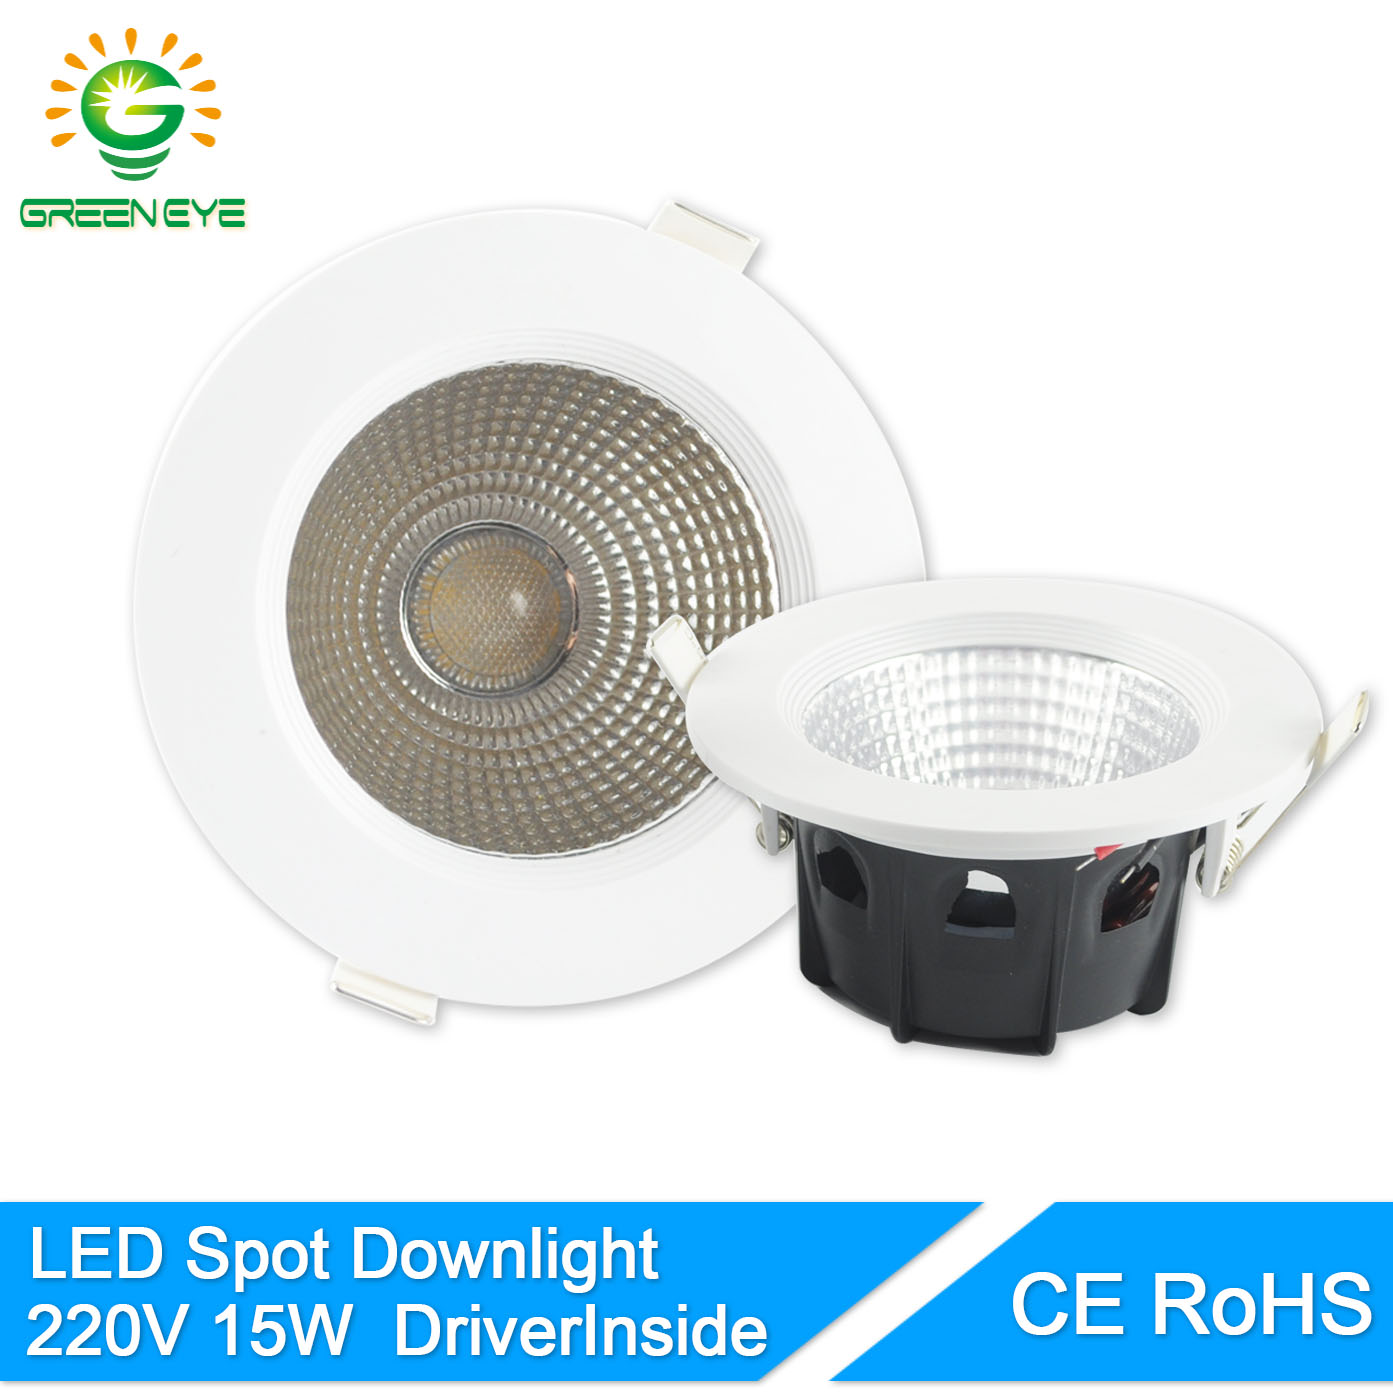 greeneye cob super bright recessed spot led downlight 15w led lamp 220v ceiling led light indoor. Black Bedroom Furniture Sets. Home Design Ideas